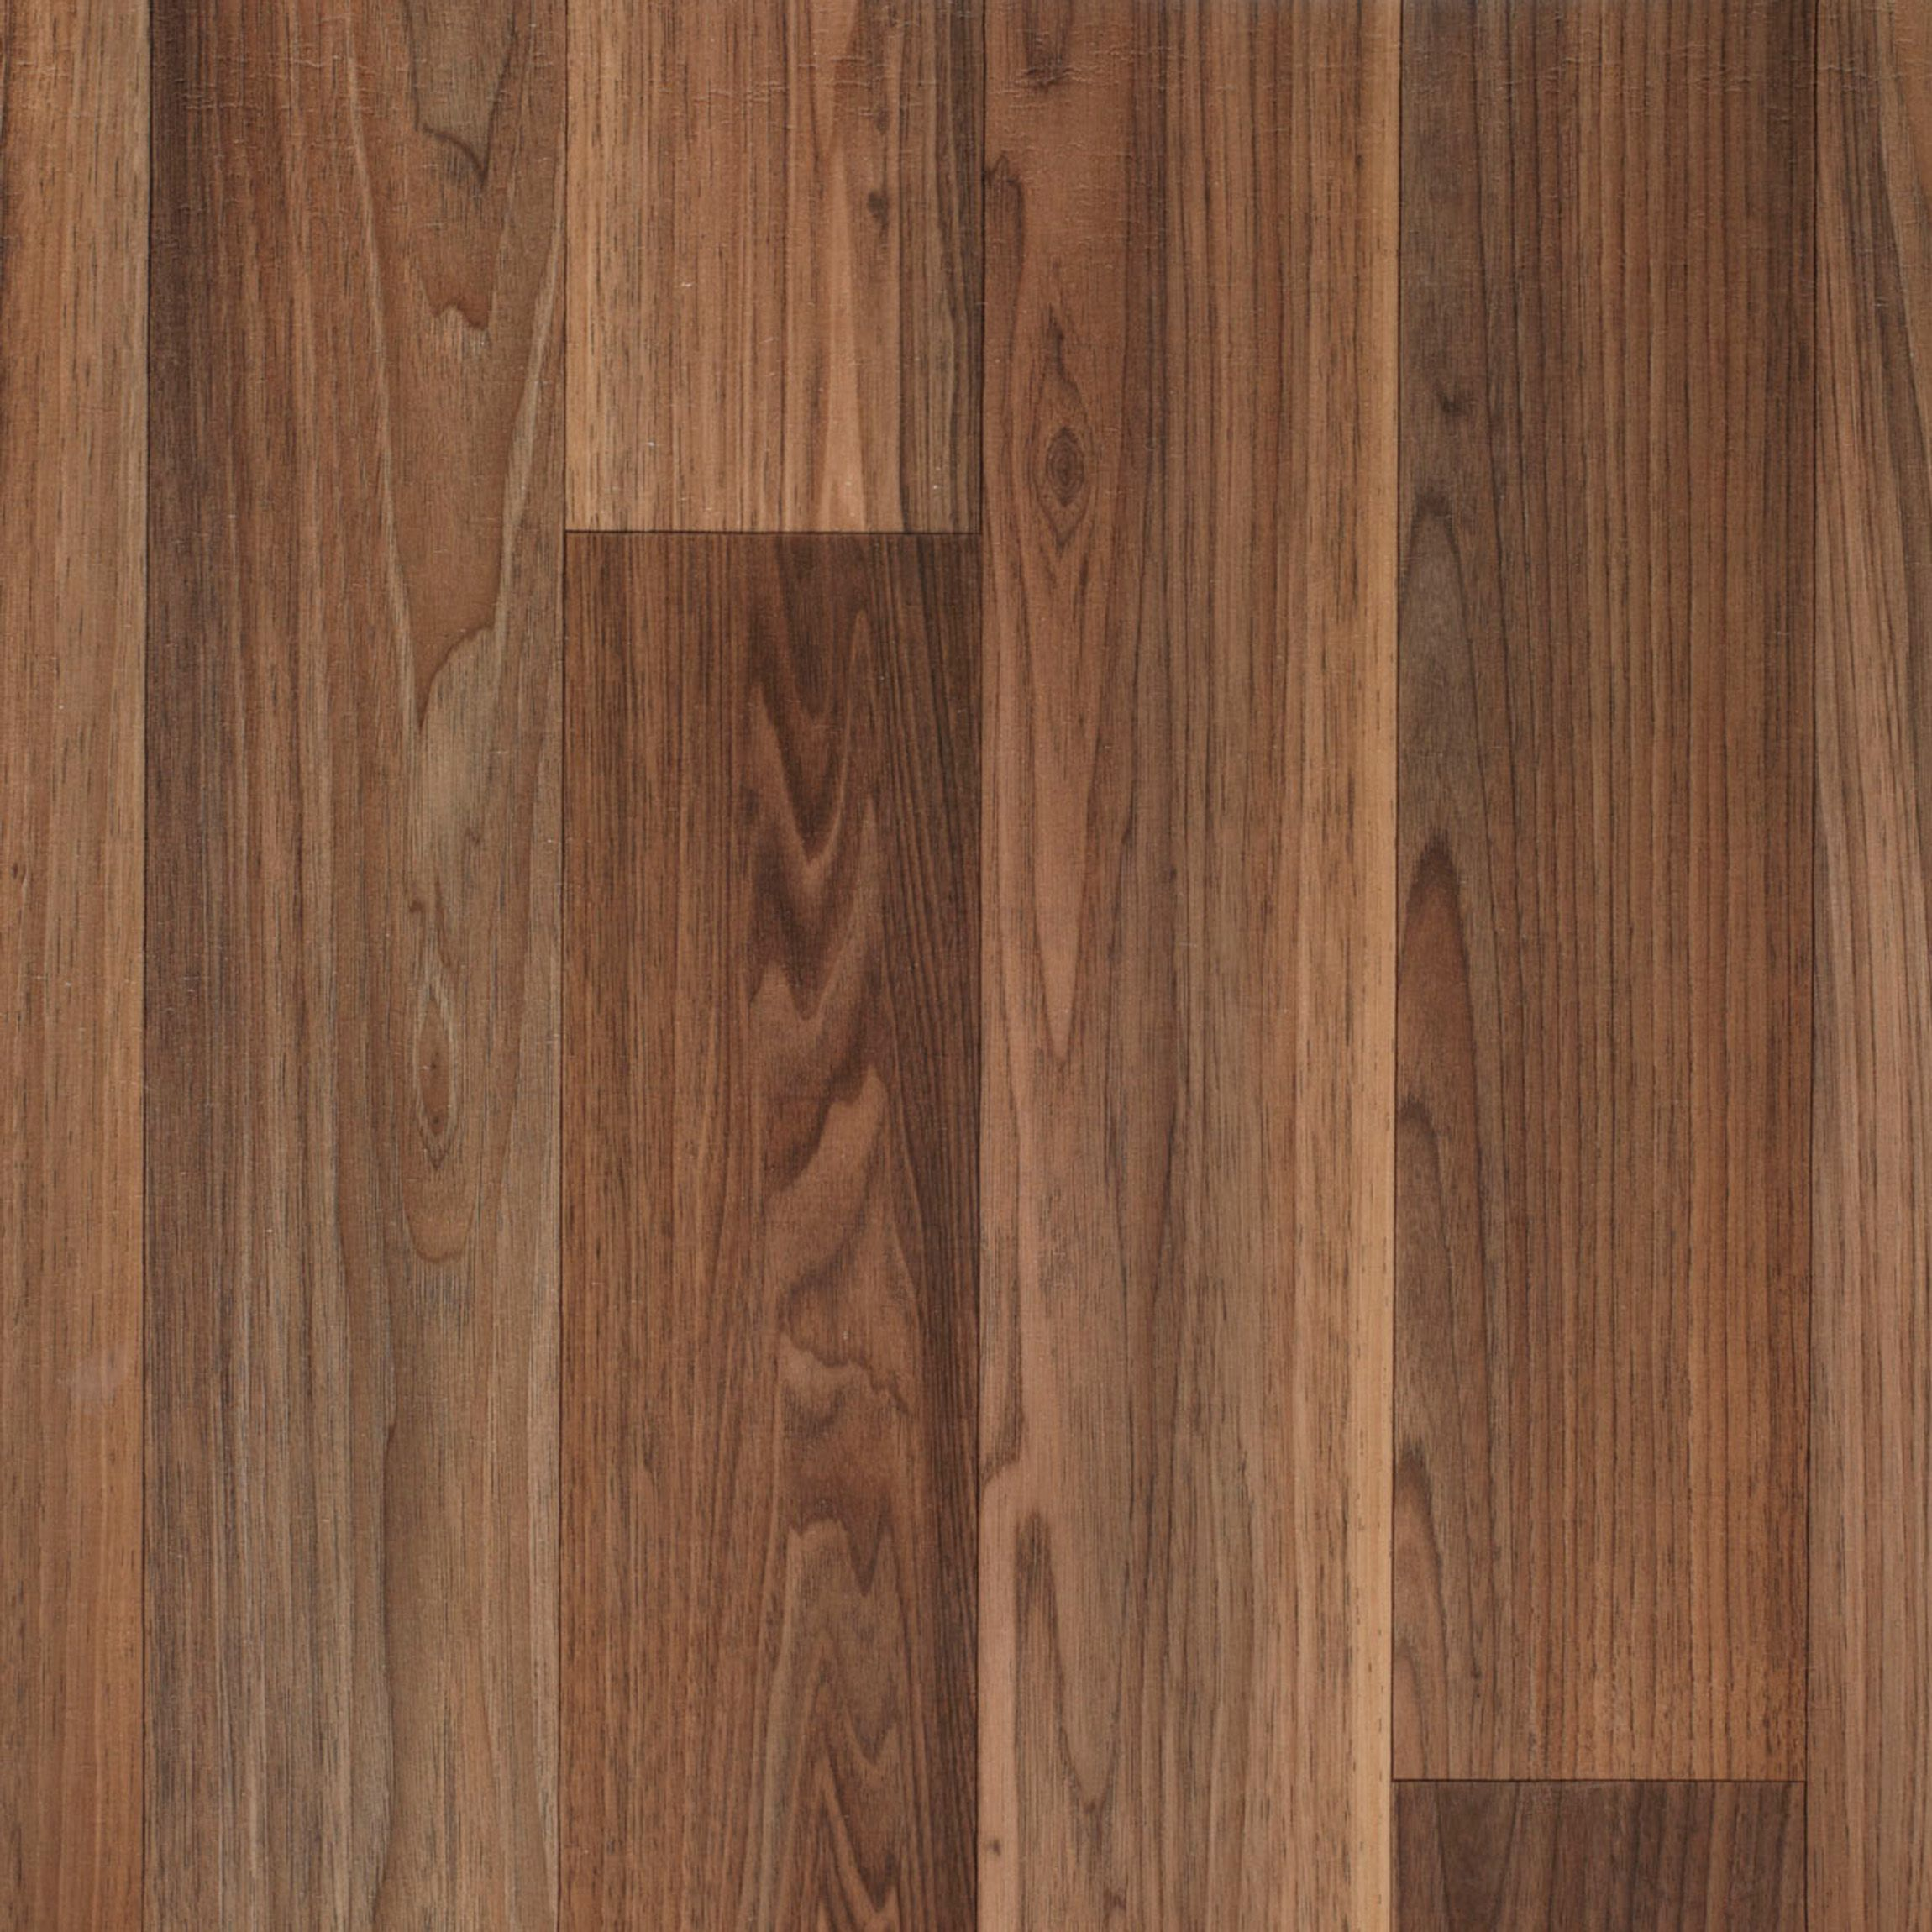 Gerflor 3m wide self stick medium walnut vinyl floor roll gerflor 3m wide self stick medium walnut vinyl floor roll bunnings warehouse 4490 dailygadgetfo Image collections